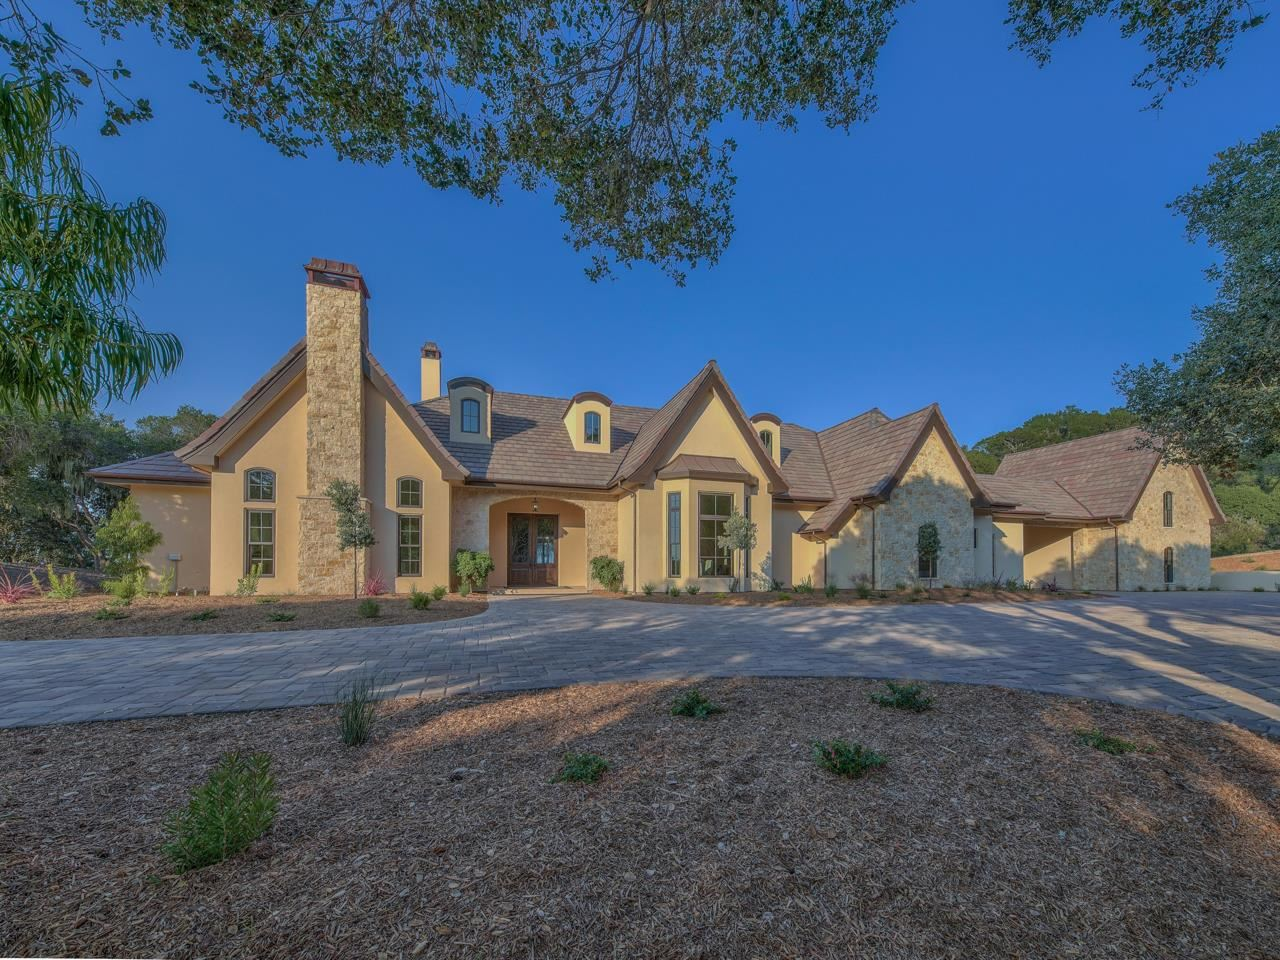 Photo for 7835 Monterra Oaks RD, MONTEREY, CA 93940 (MLS # ML81814593)